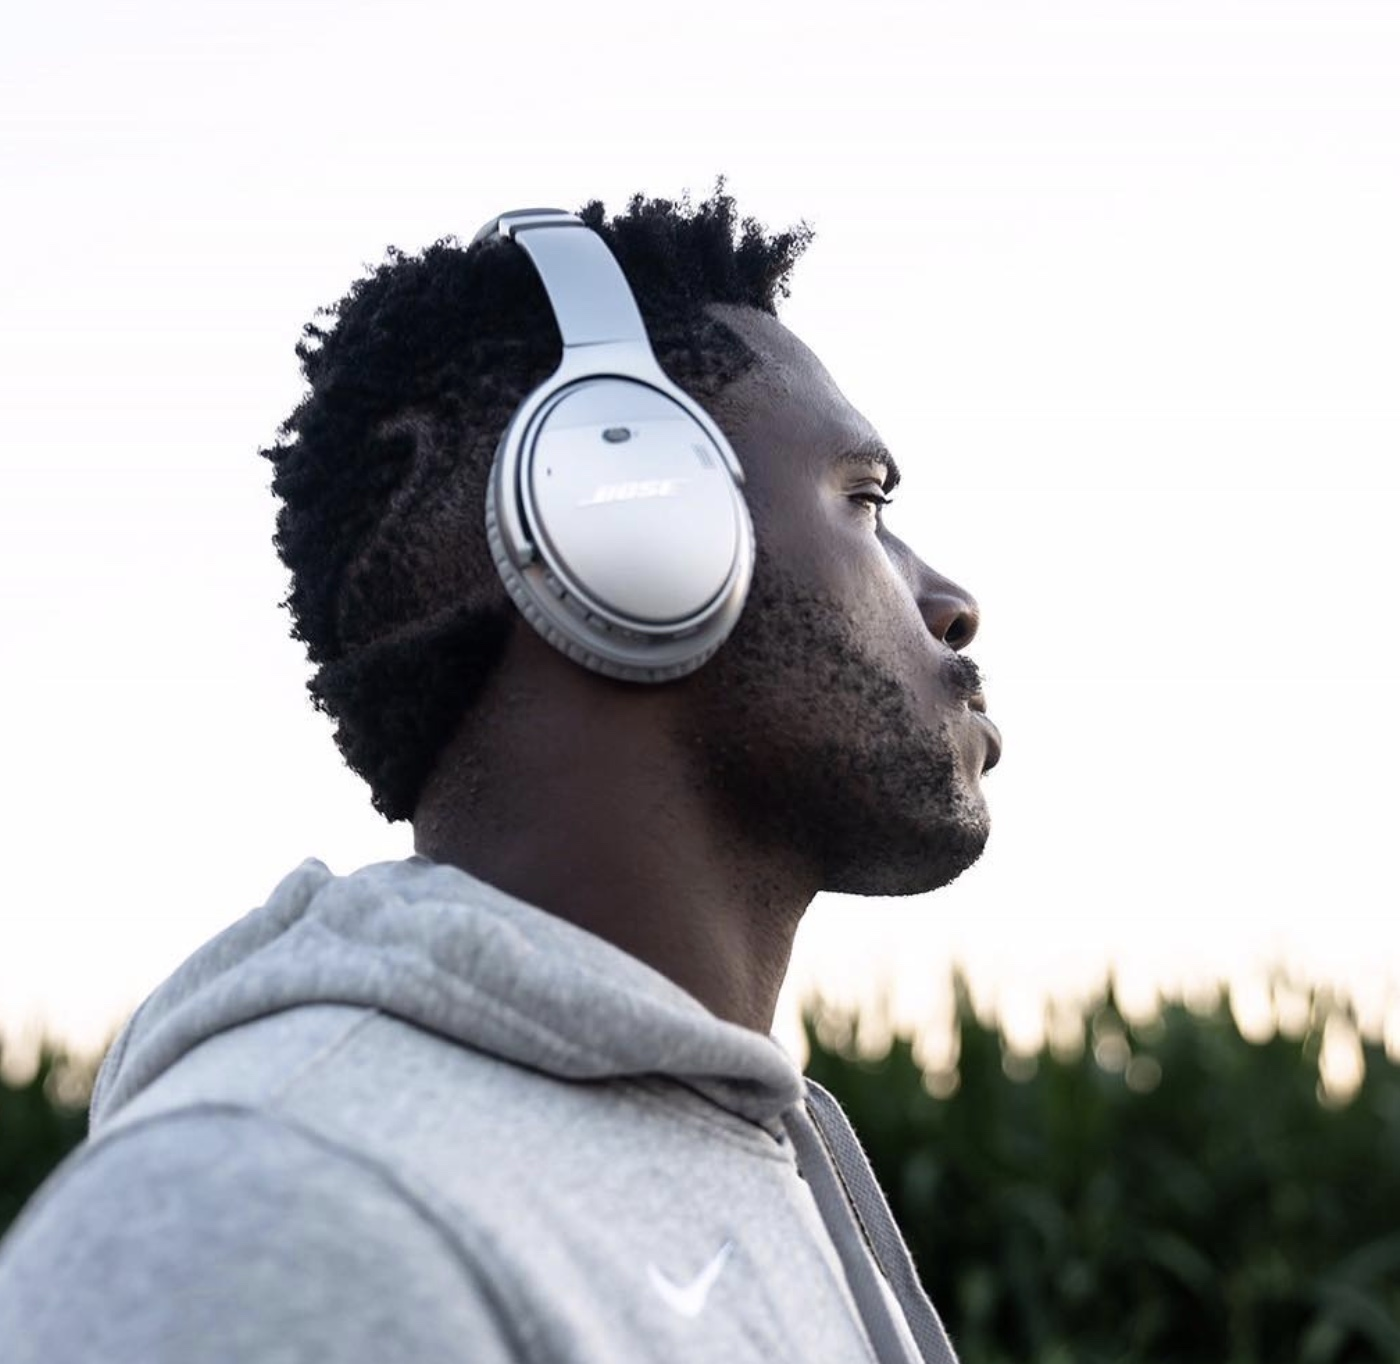 Photo cred: Bose Instagram